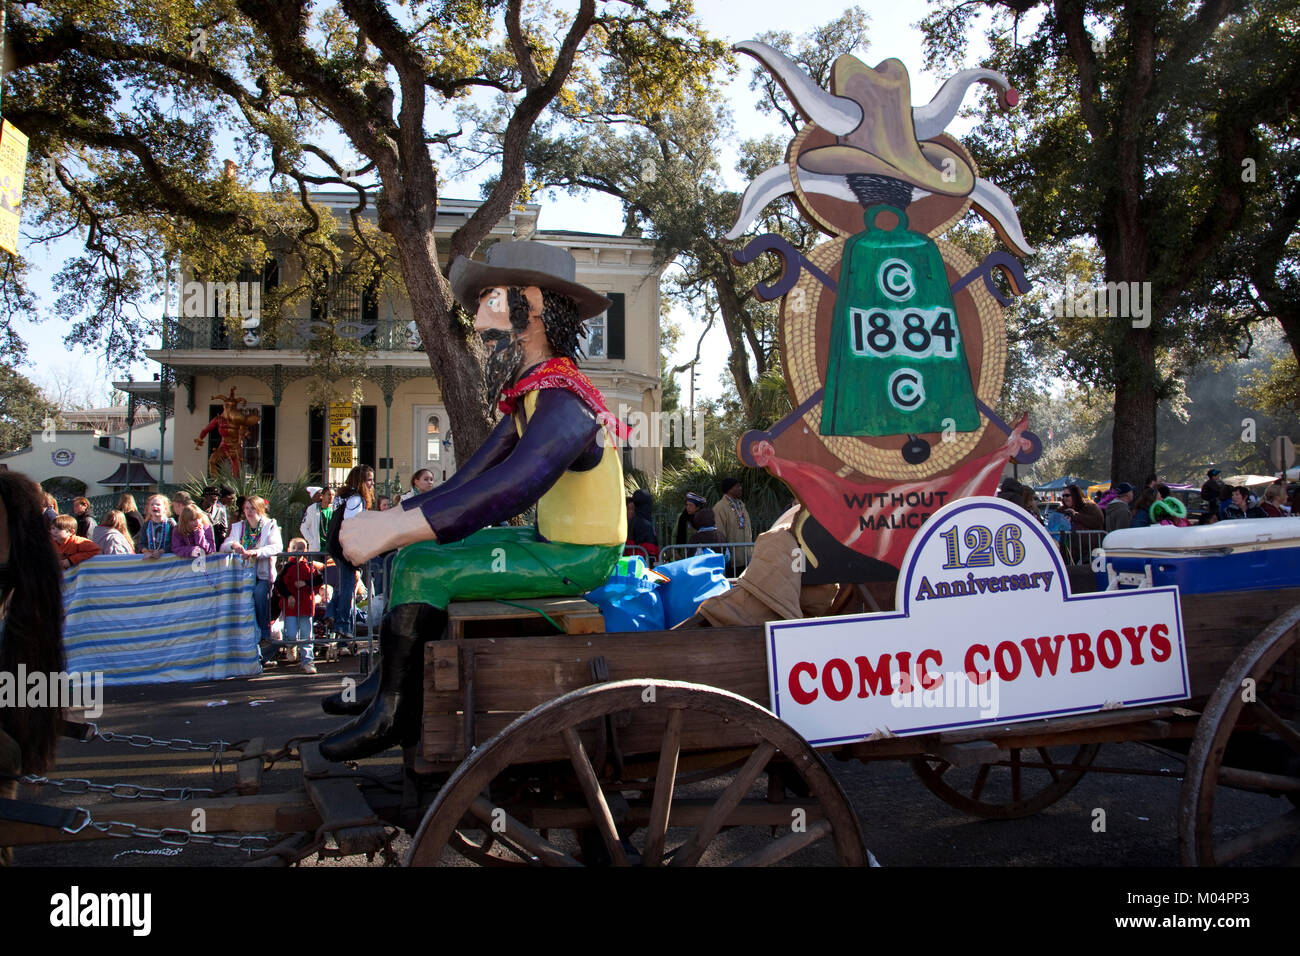 Comic Cowboys Float - Stock Image